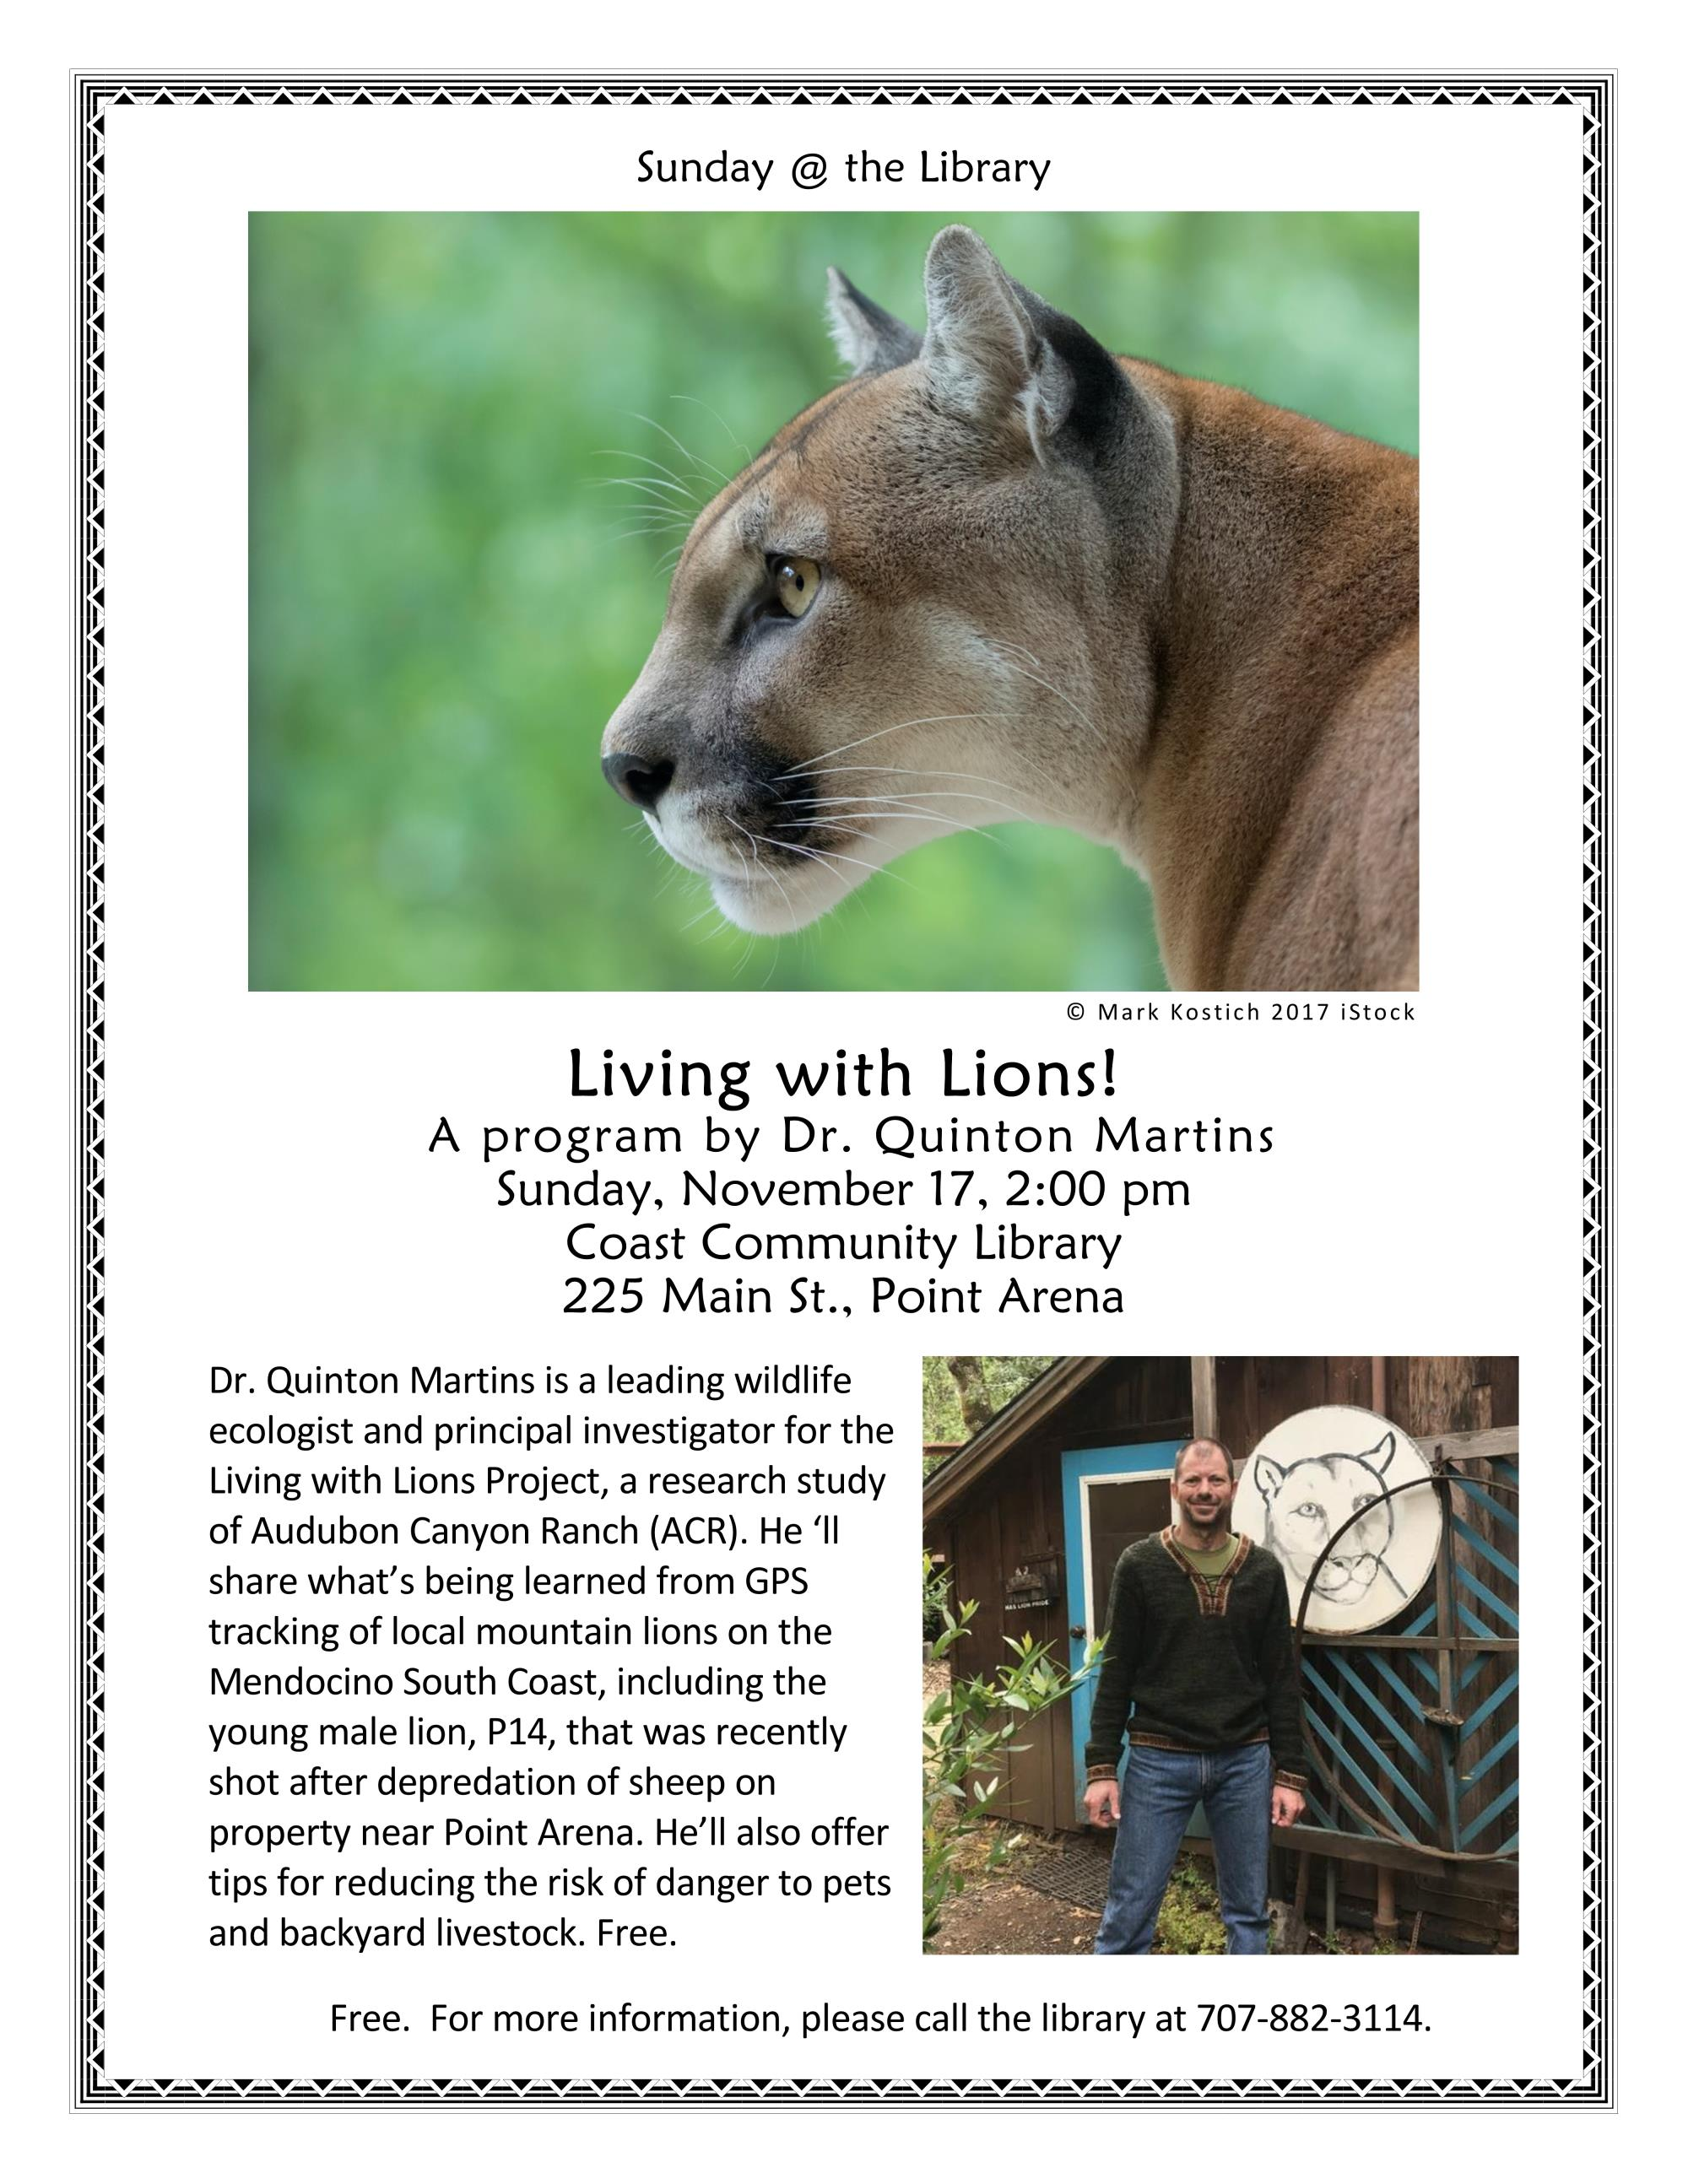 Living with Lions - Sunday @ the Library